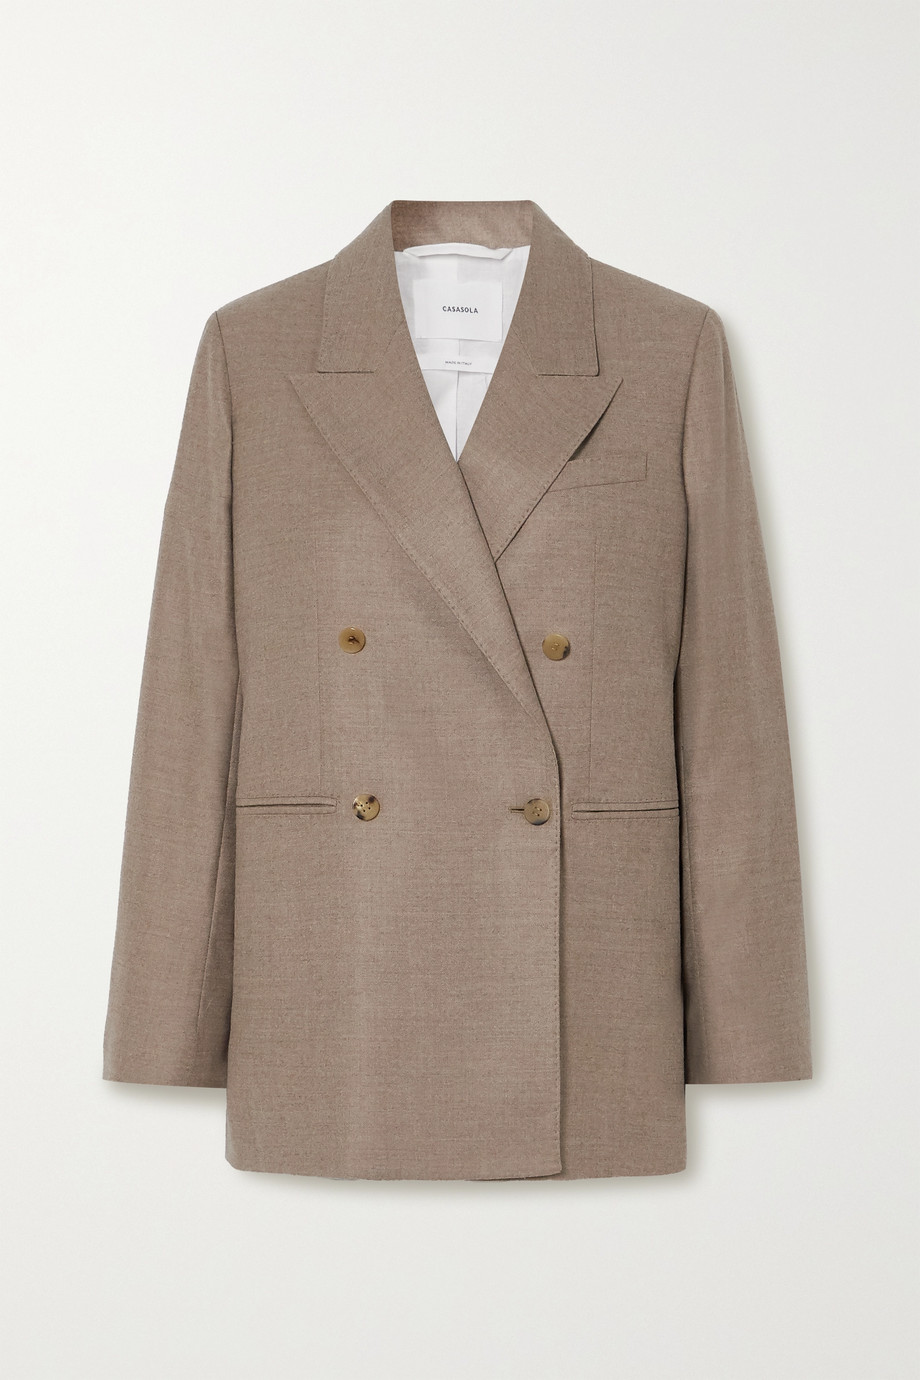 CASASOLA + NET SUSTAIN Carioca double-breasted wool and silk-blend blazer